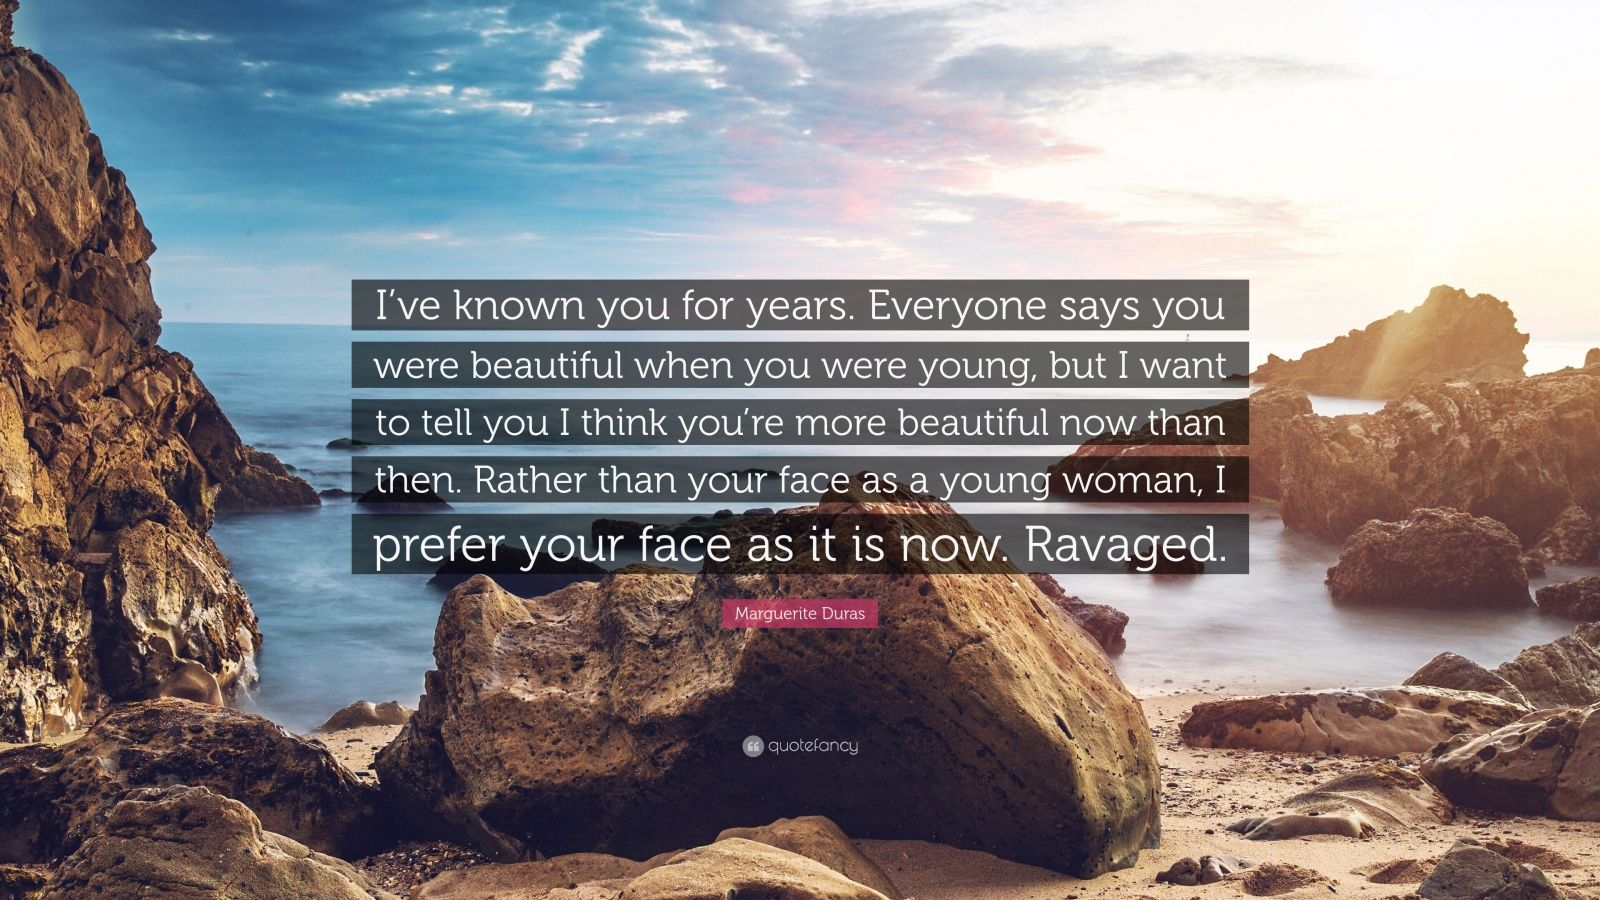 """Marguerite Duras Quote: """"I've known you for years. Everyone says you were beautiful when you were young, but I want to tell you I think you're more beautiful now than then. Rather than your face as a young woman, I prefer your face as it is now. Ravaged."""""""